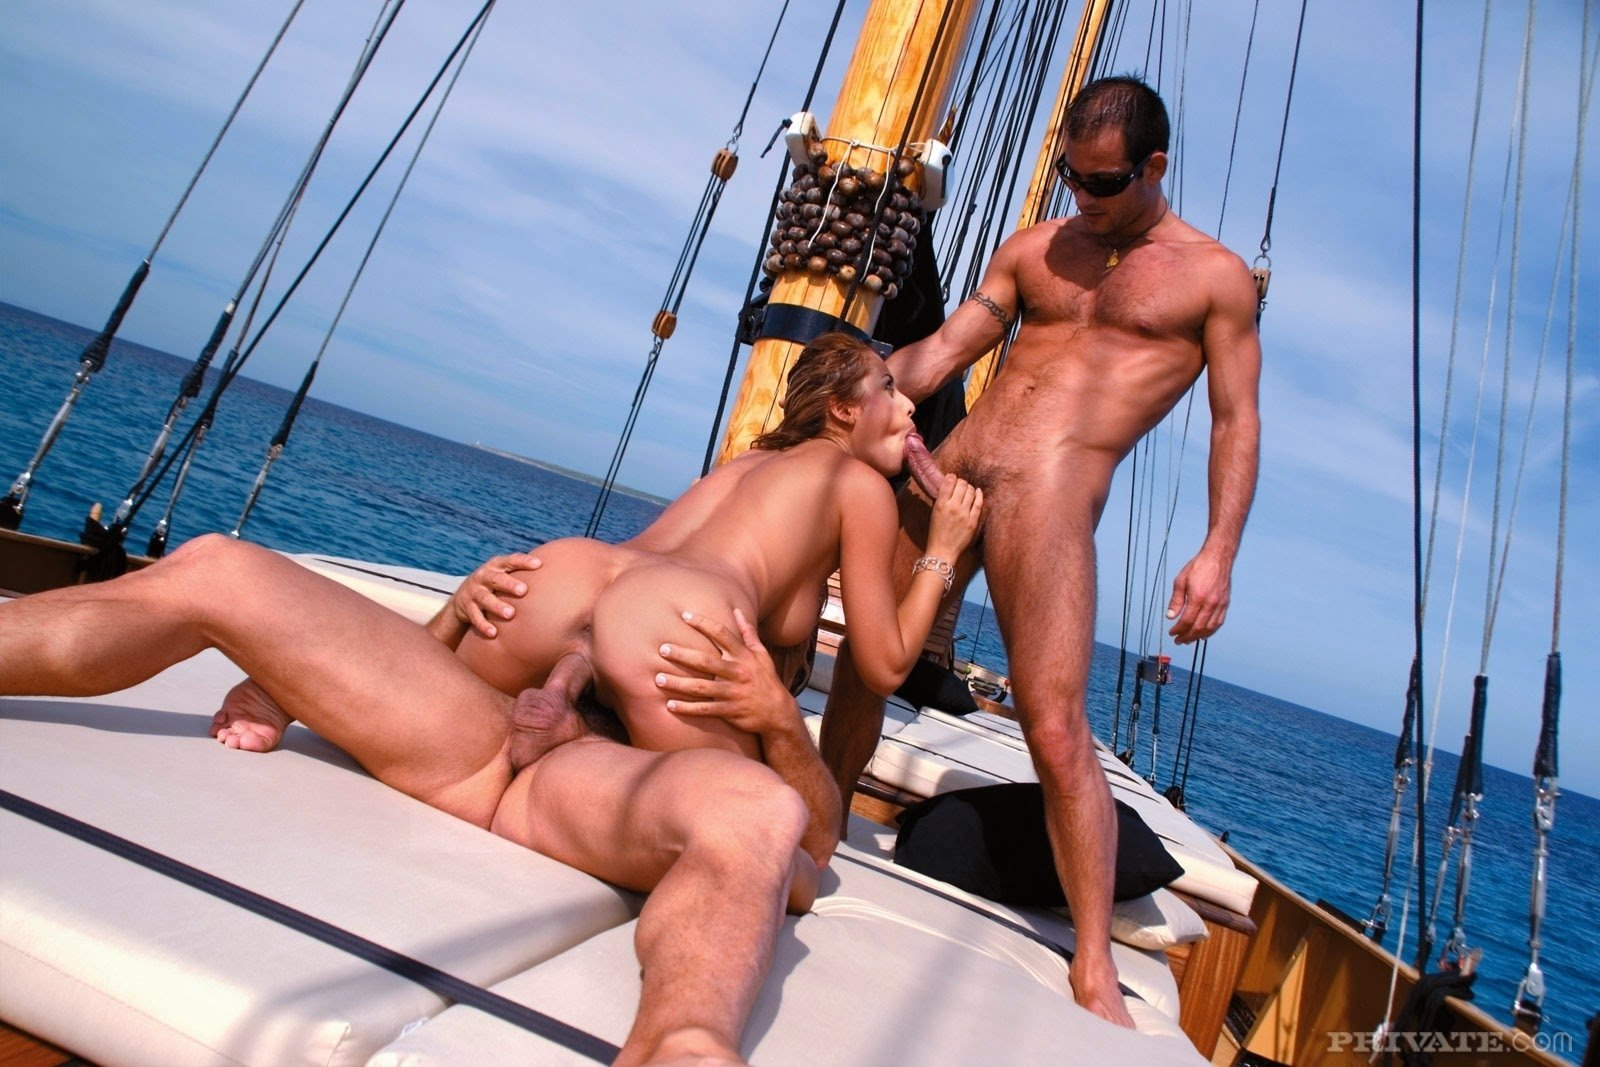 Girl fucked by two guys on boat